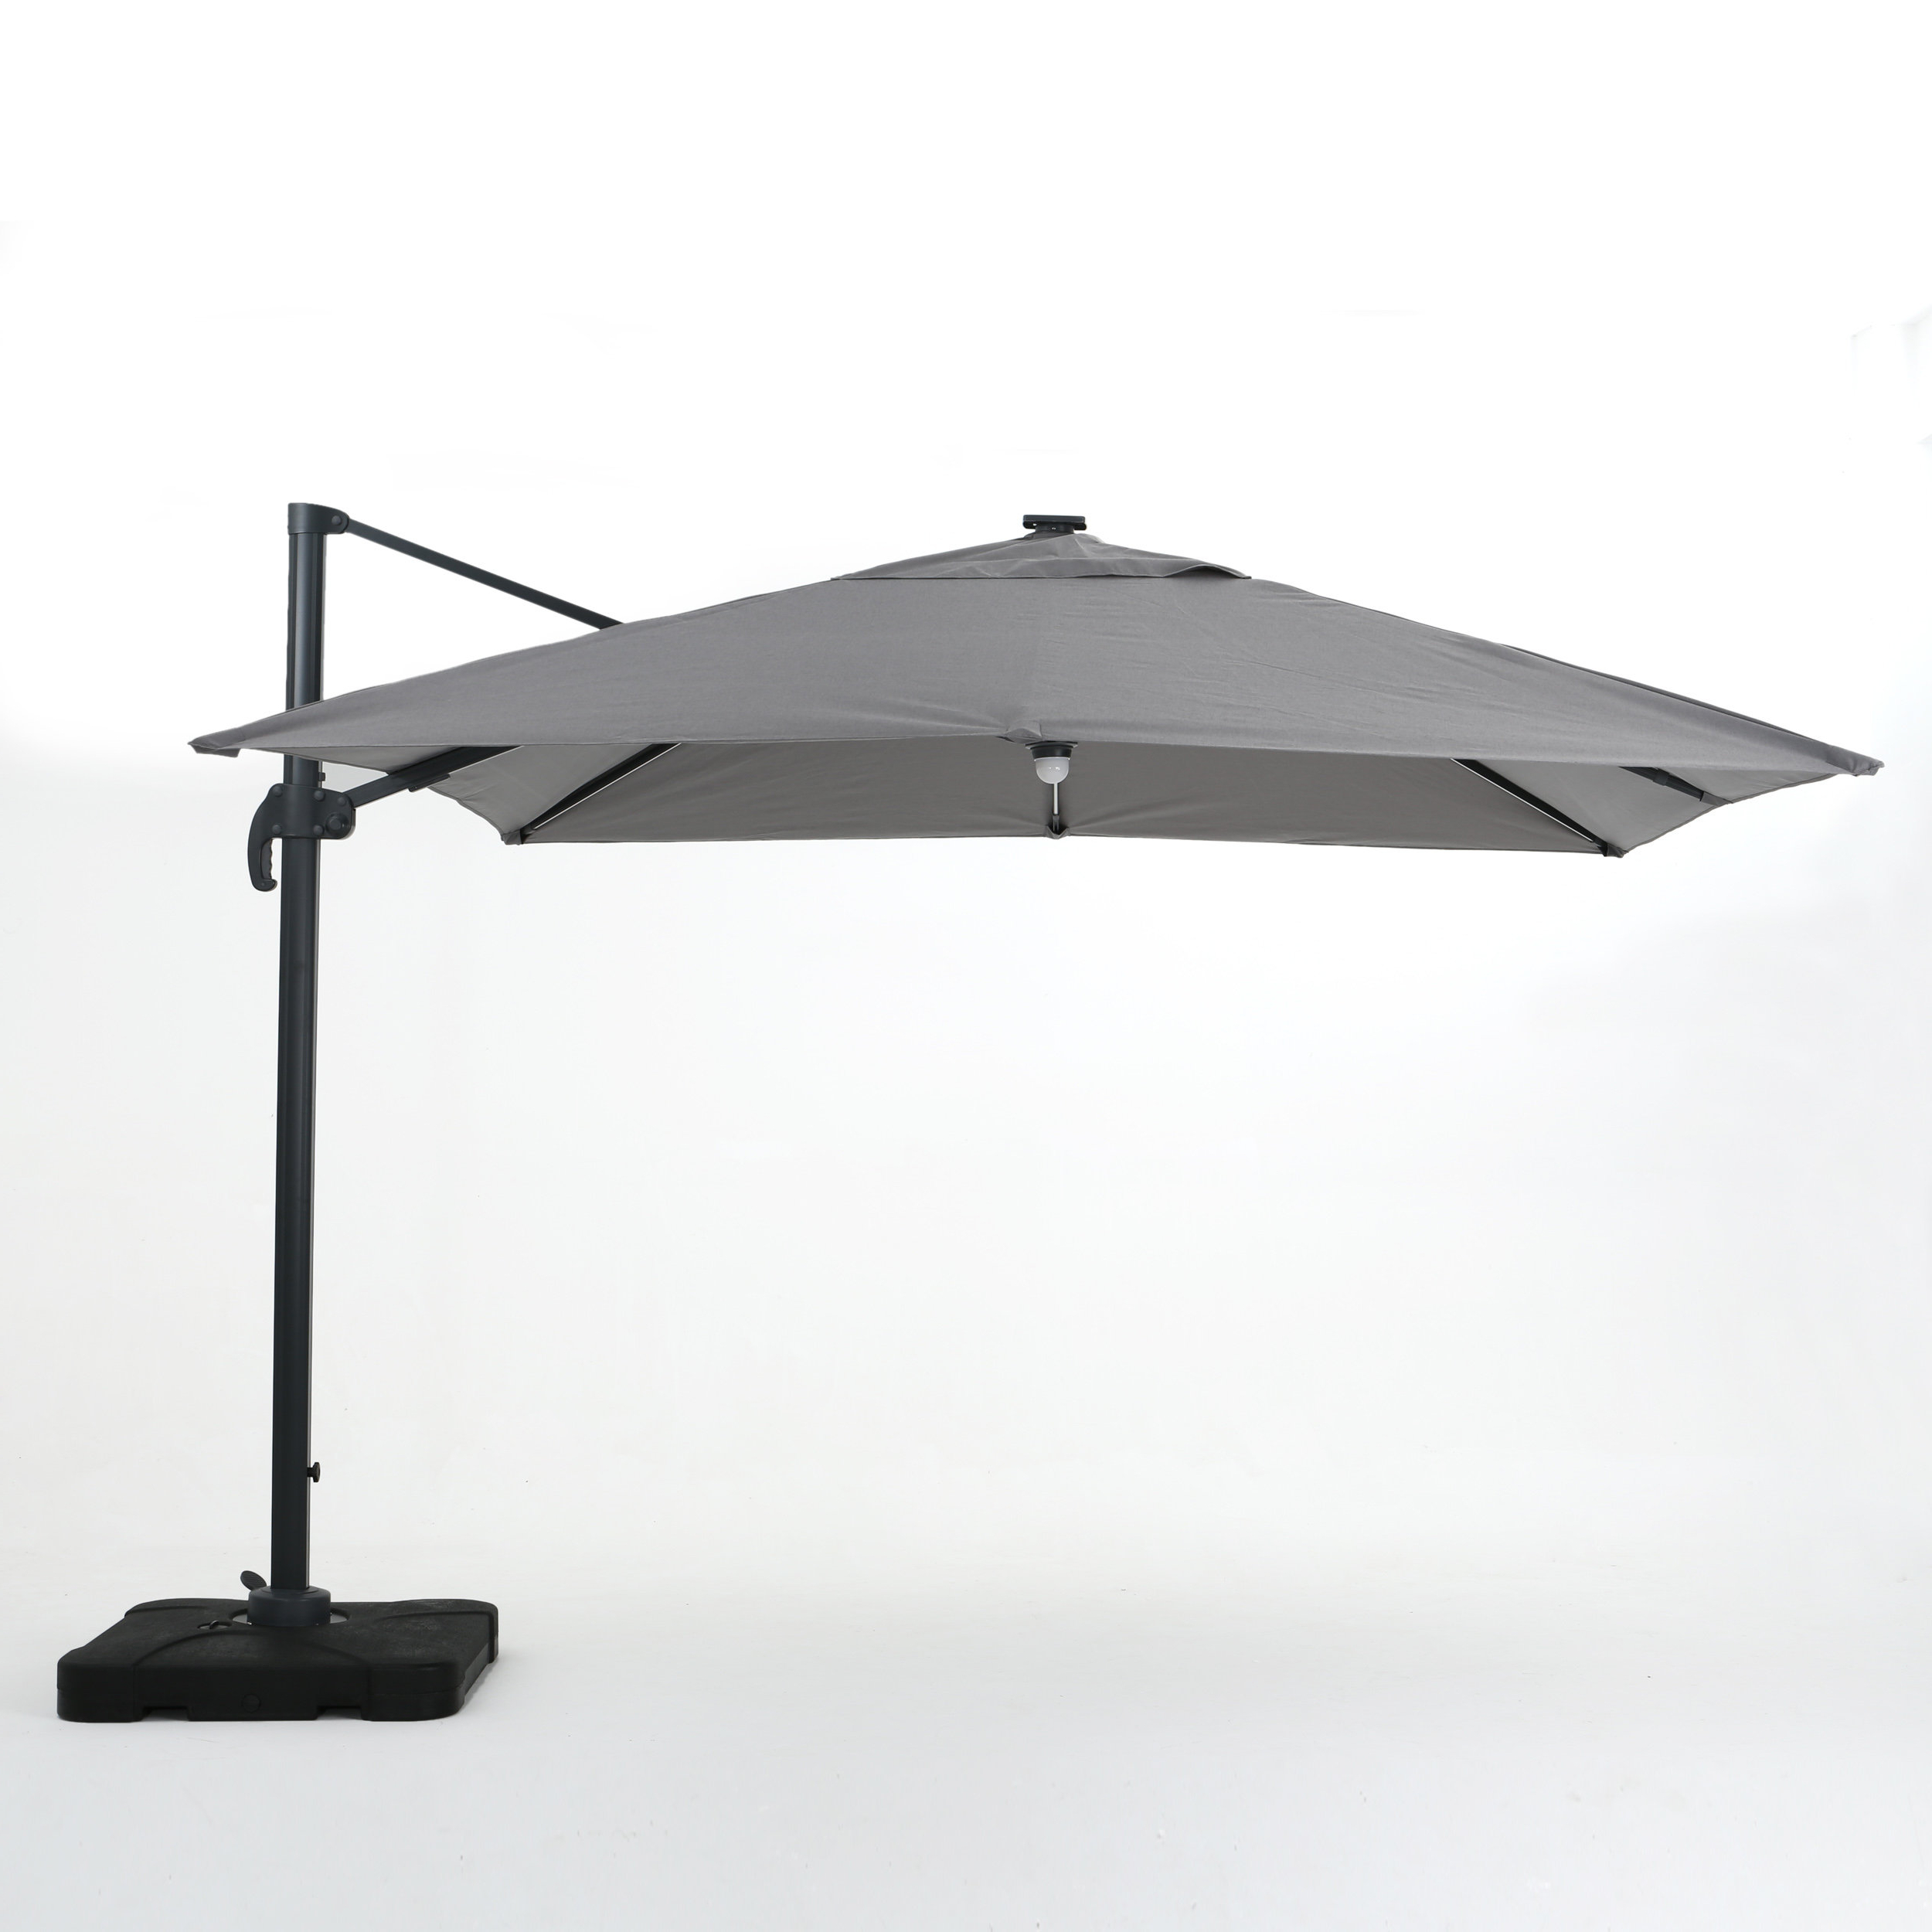 Carlisle Cantilever Sunbrella Umbrellas Within Preferred Jendayi Square Cantilever Umbrella (View 8 of 20)